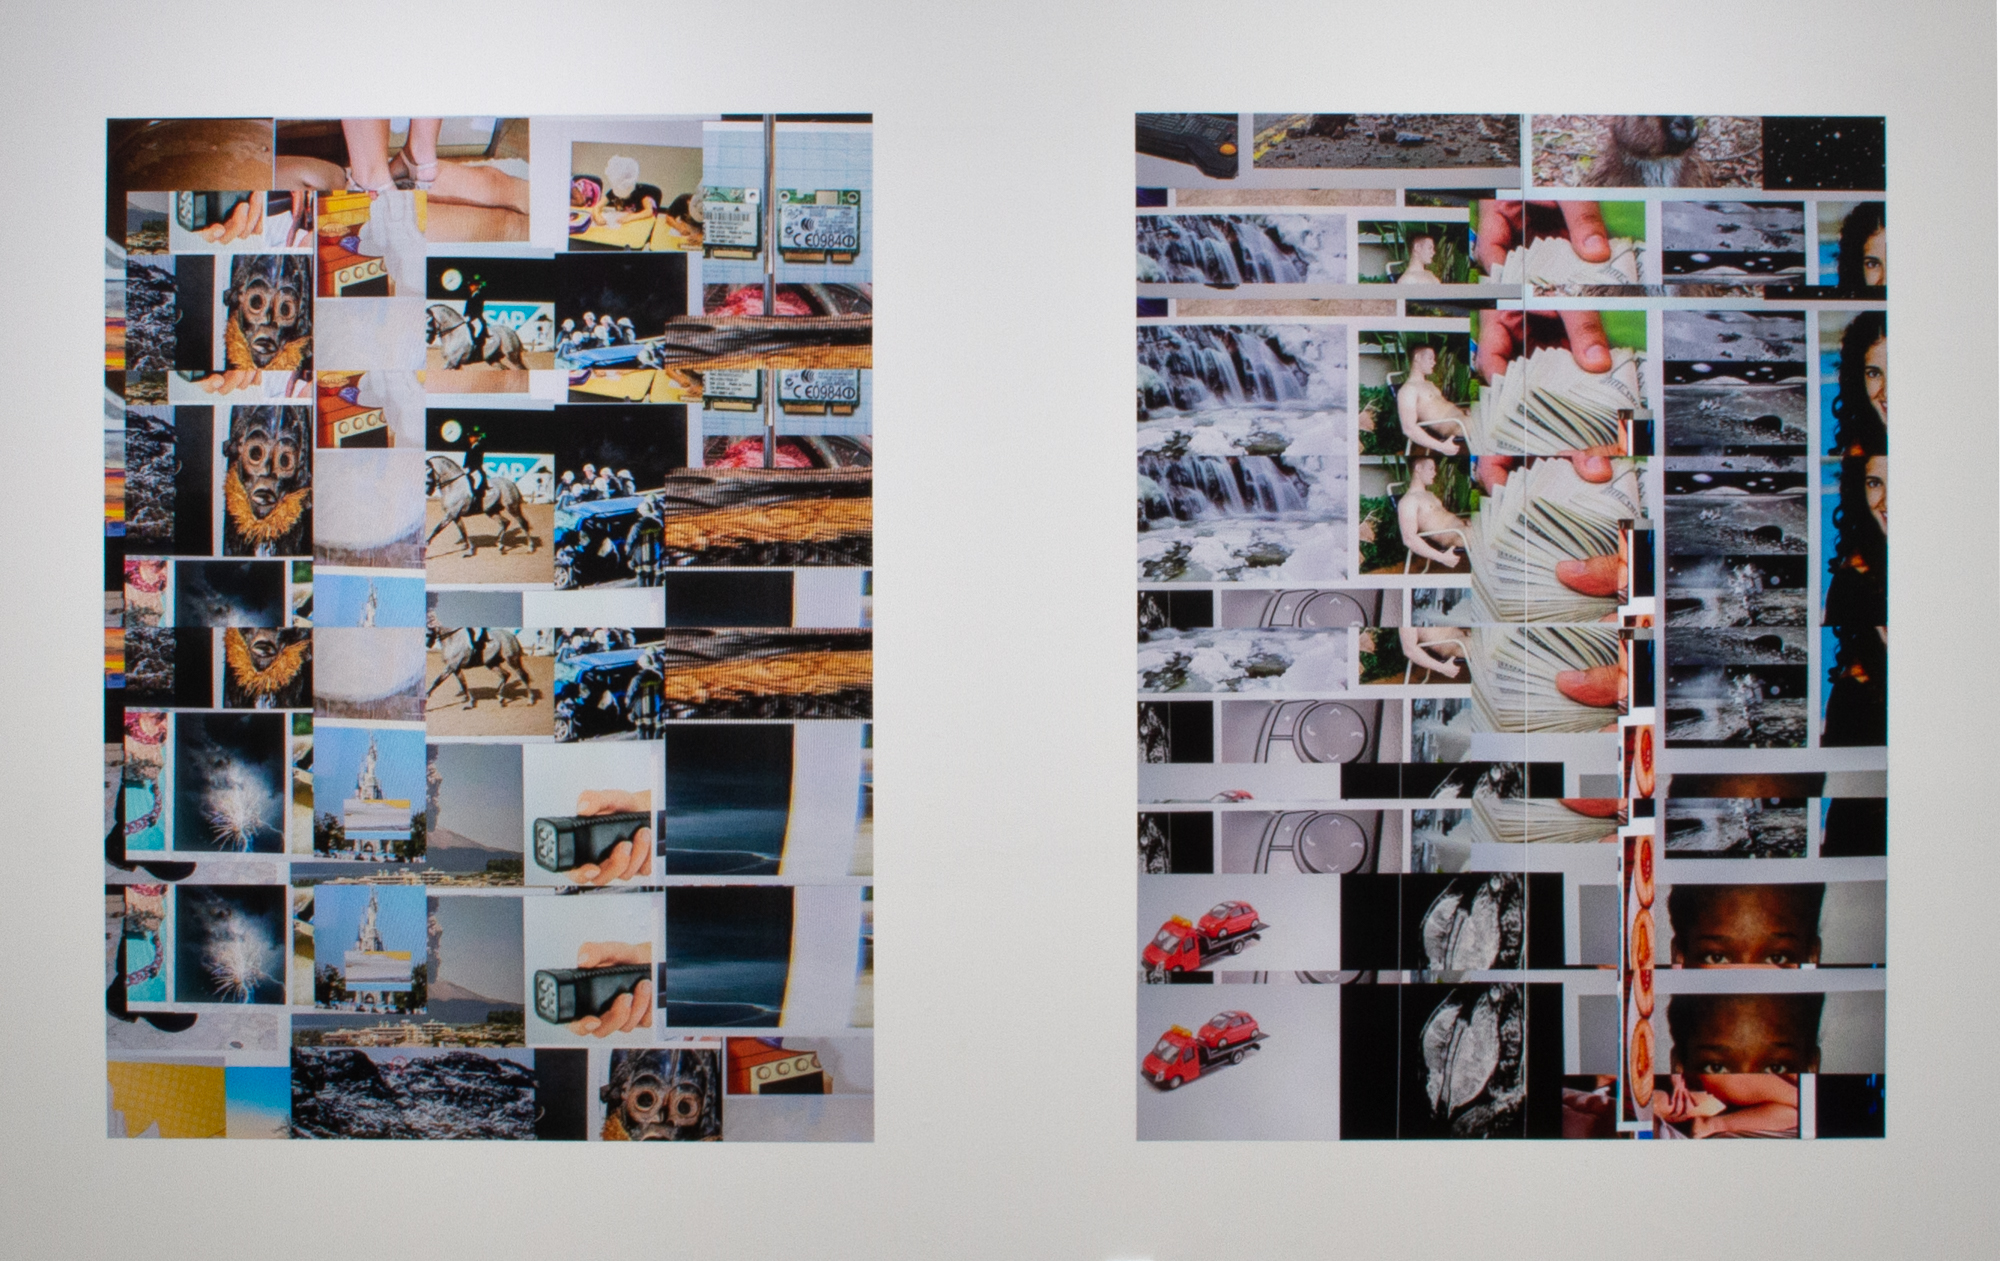 Anthony Discenza, Left:  Image Search Composition 2831-1542165551477 , 2018, Digital output on 3M Control-Tac vinyl, 67.7 x 50 in., ed. of 3 + AP + temporary exhibition copy. Right:  Image Search Composition 3140-1539913076358 , 2018, Digital output on 3M Control-Tac vinyl, 67.7 x 50 in., ed. of 3 + AP + temporary exhibition copy.